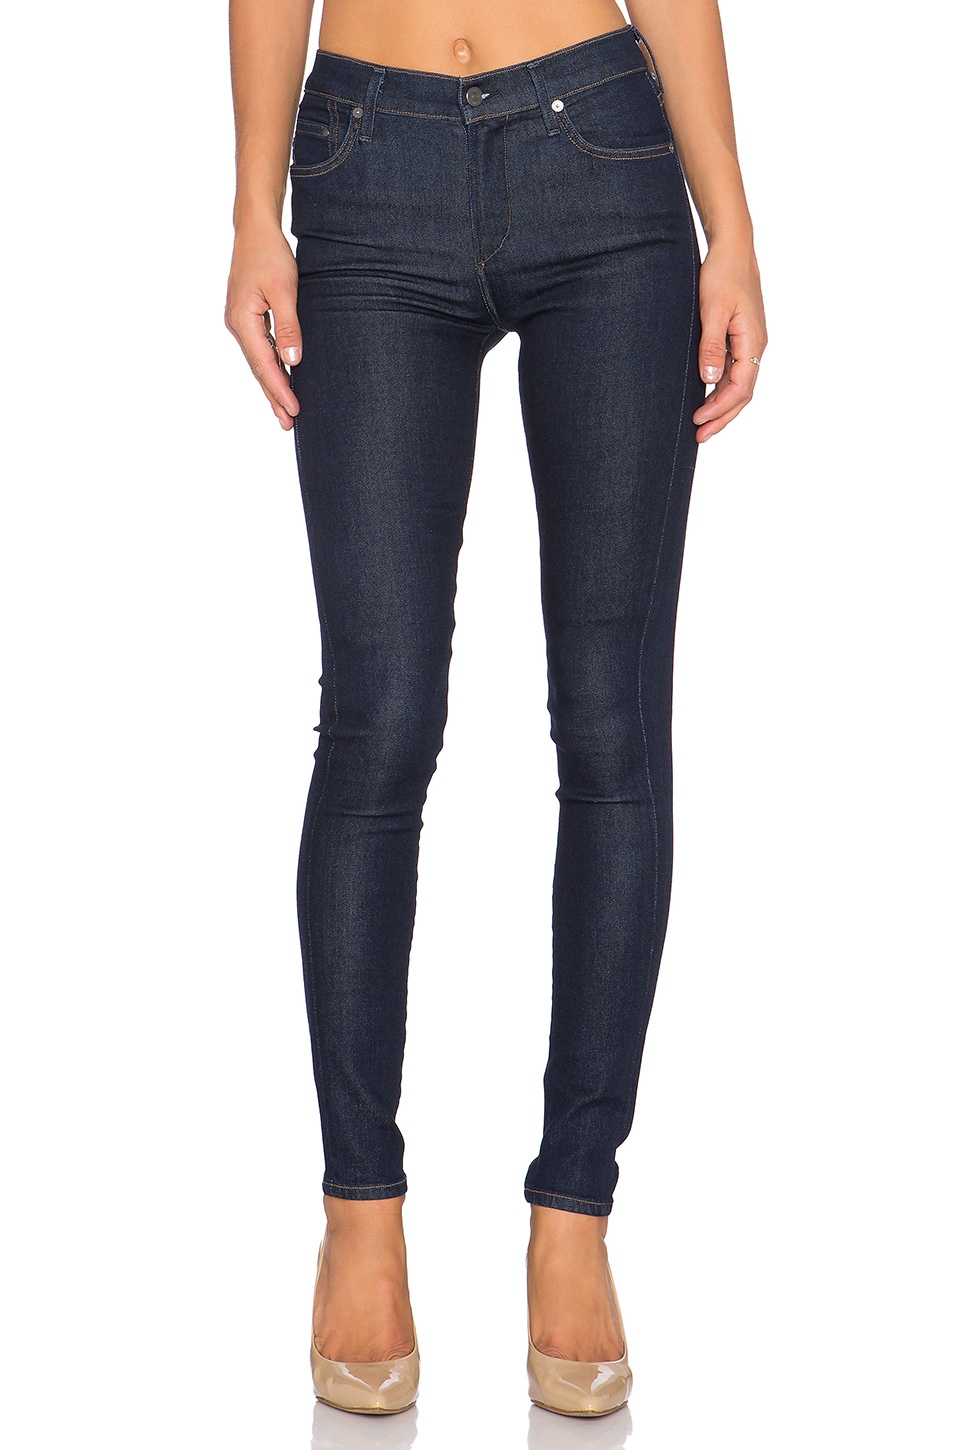 SCULPT Rocket High Rise Skinny at Revolve Clothing